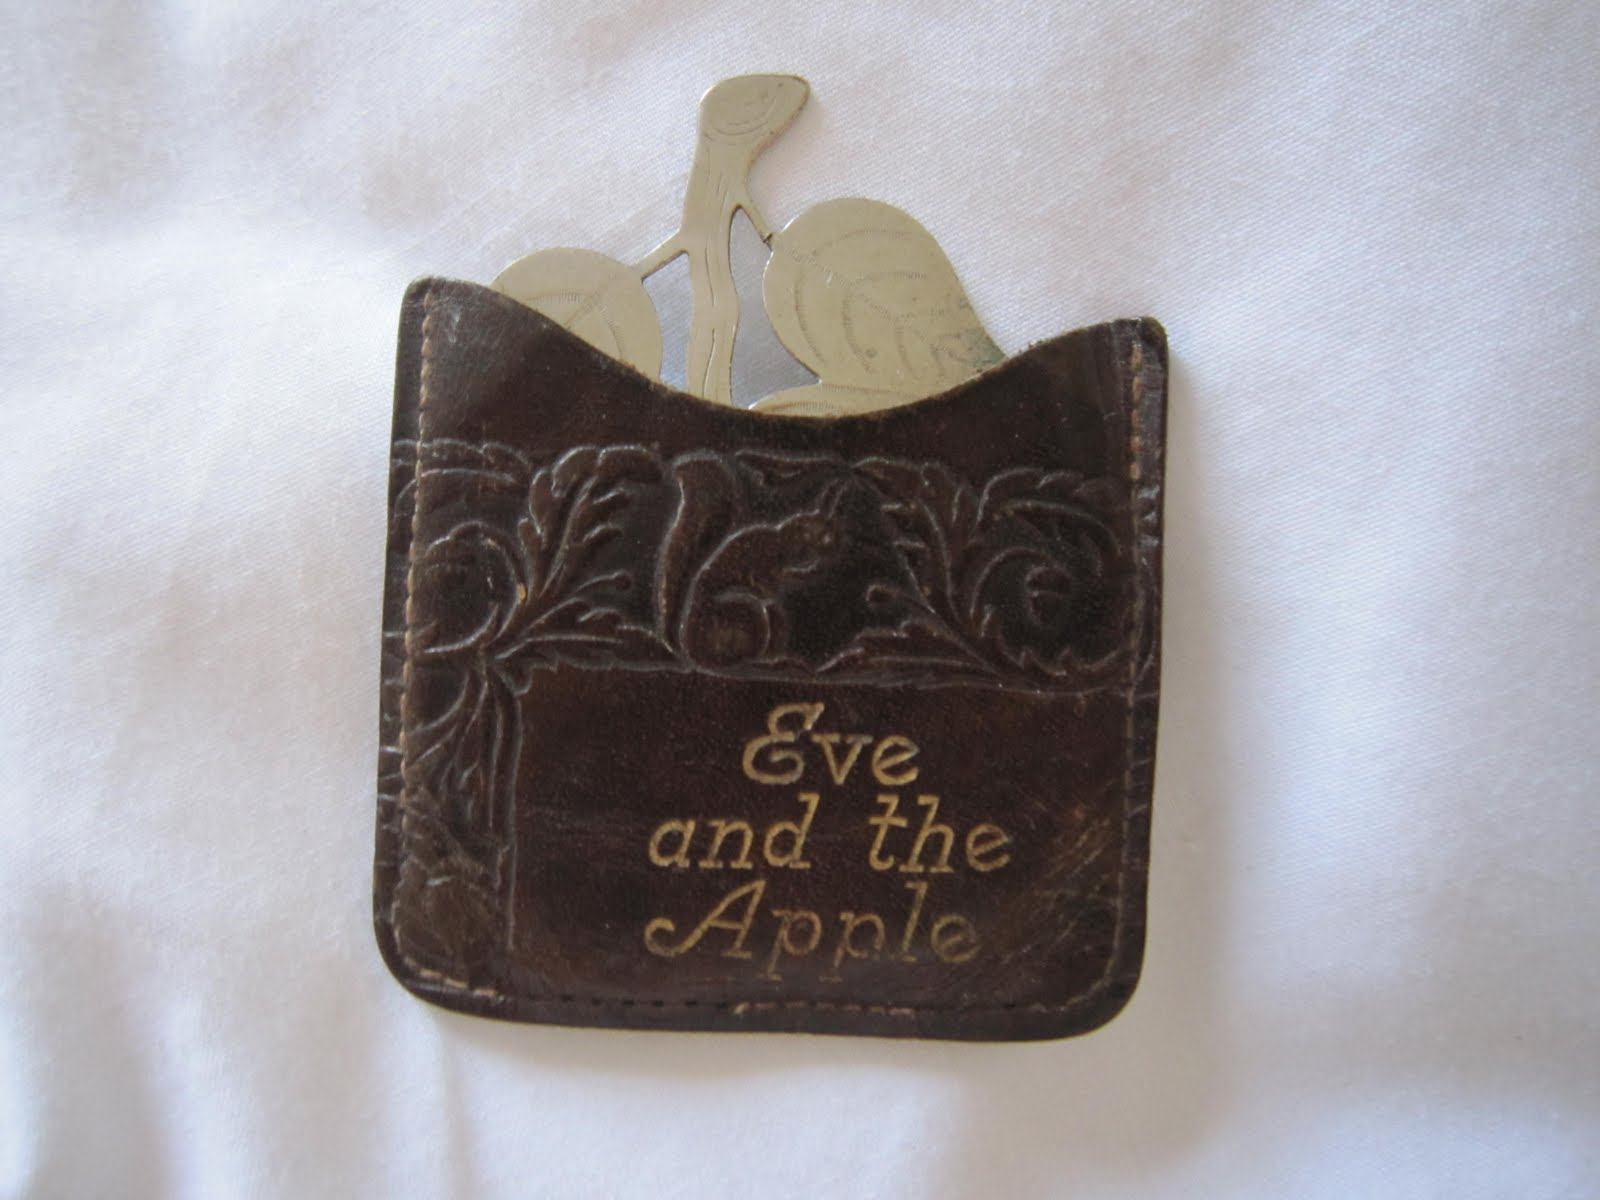 Vintage Tea Time: Eve and the apple................?